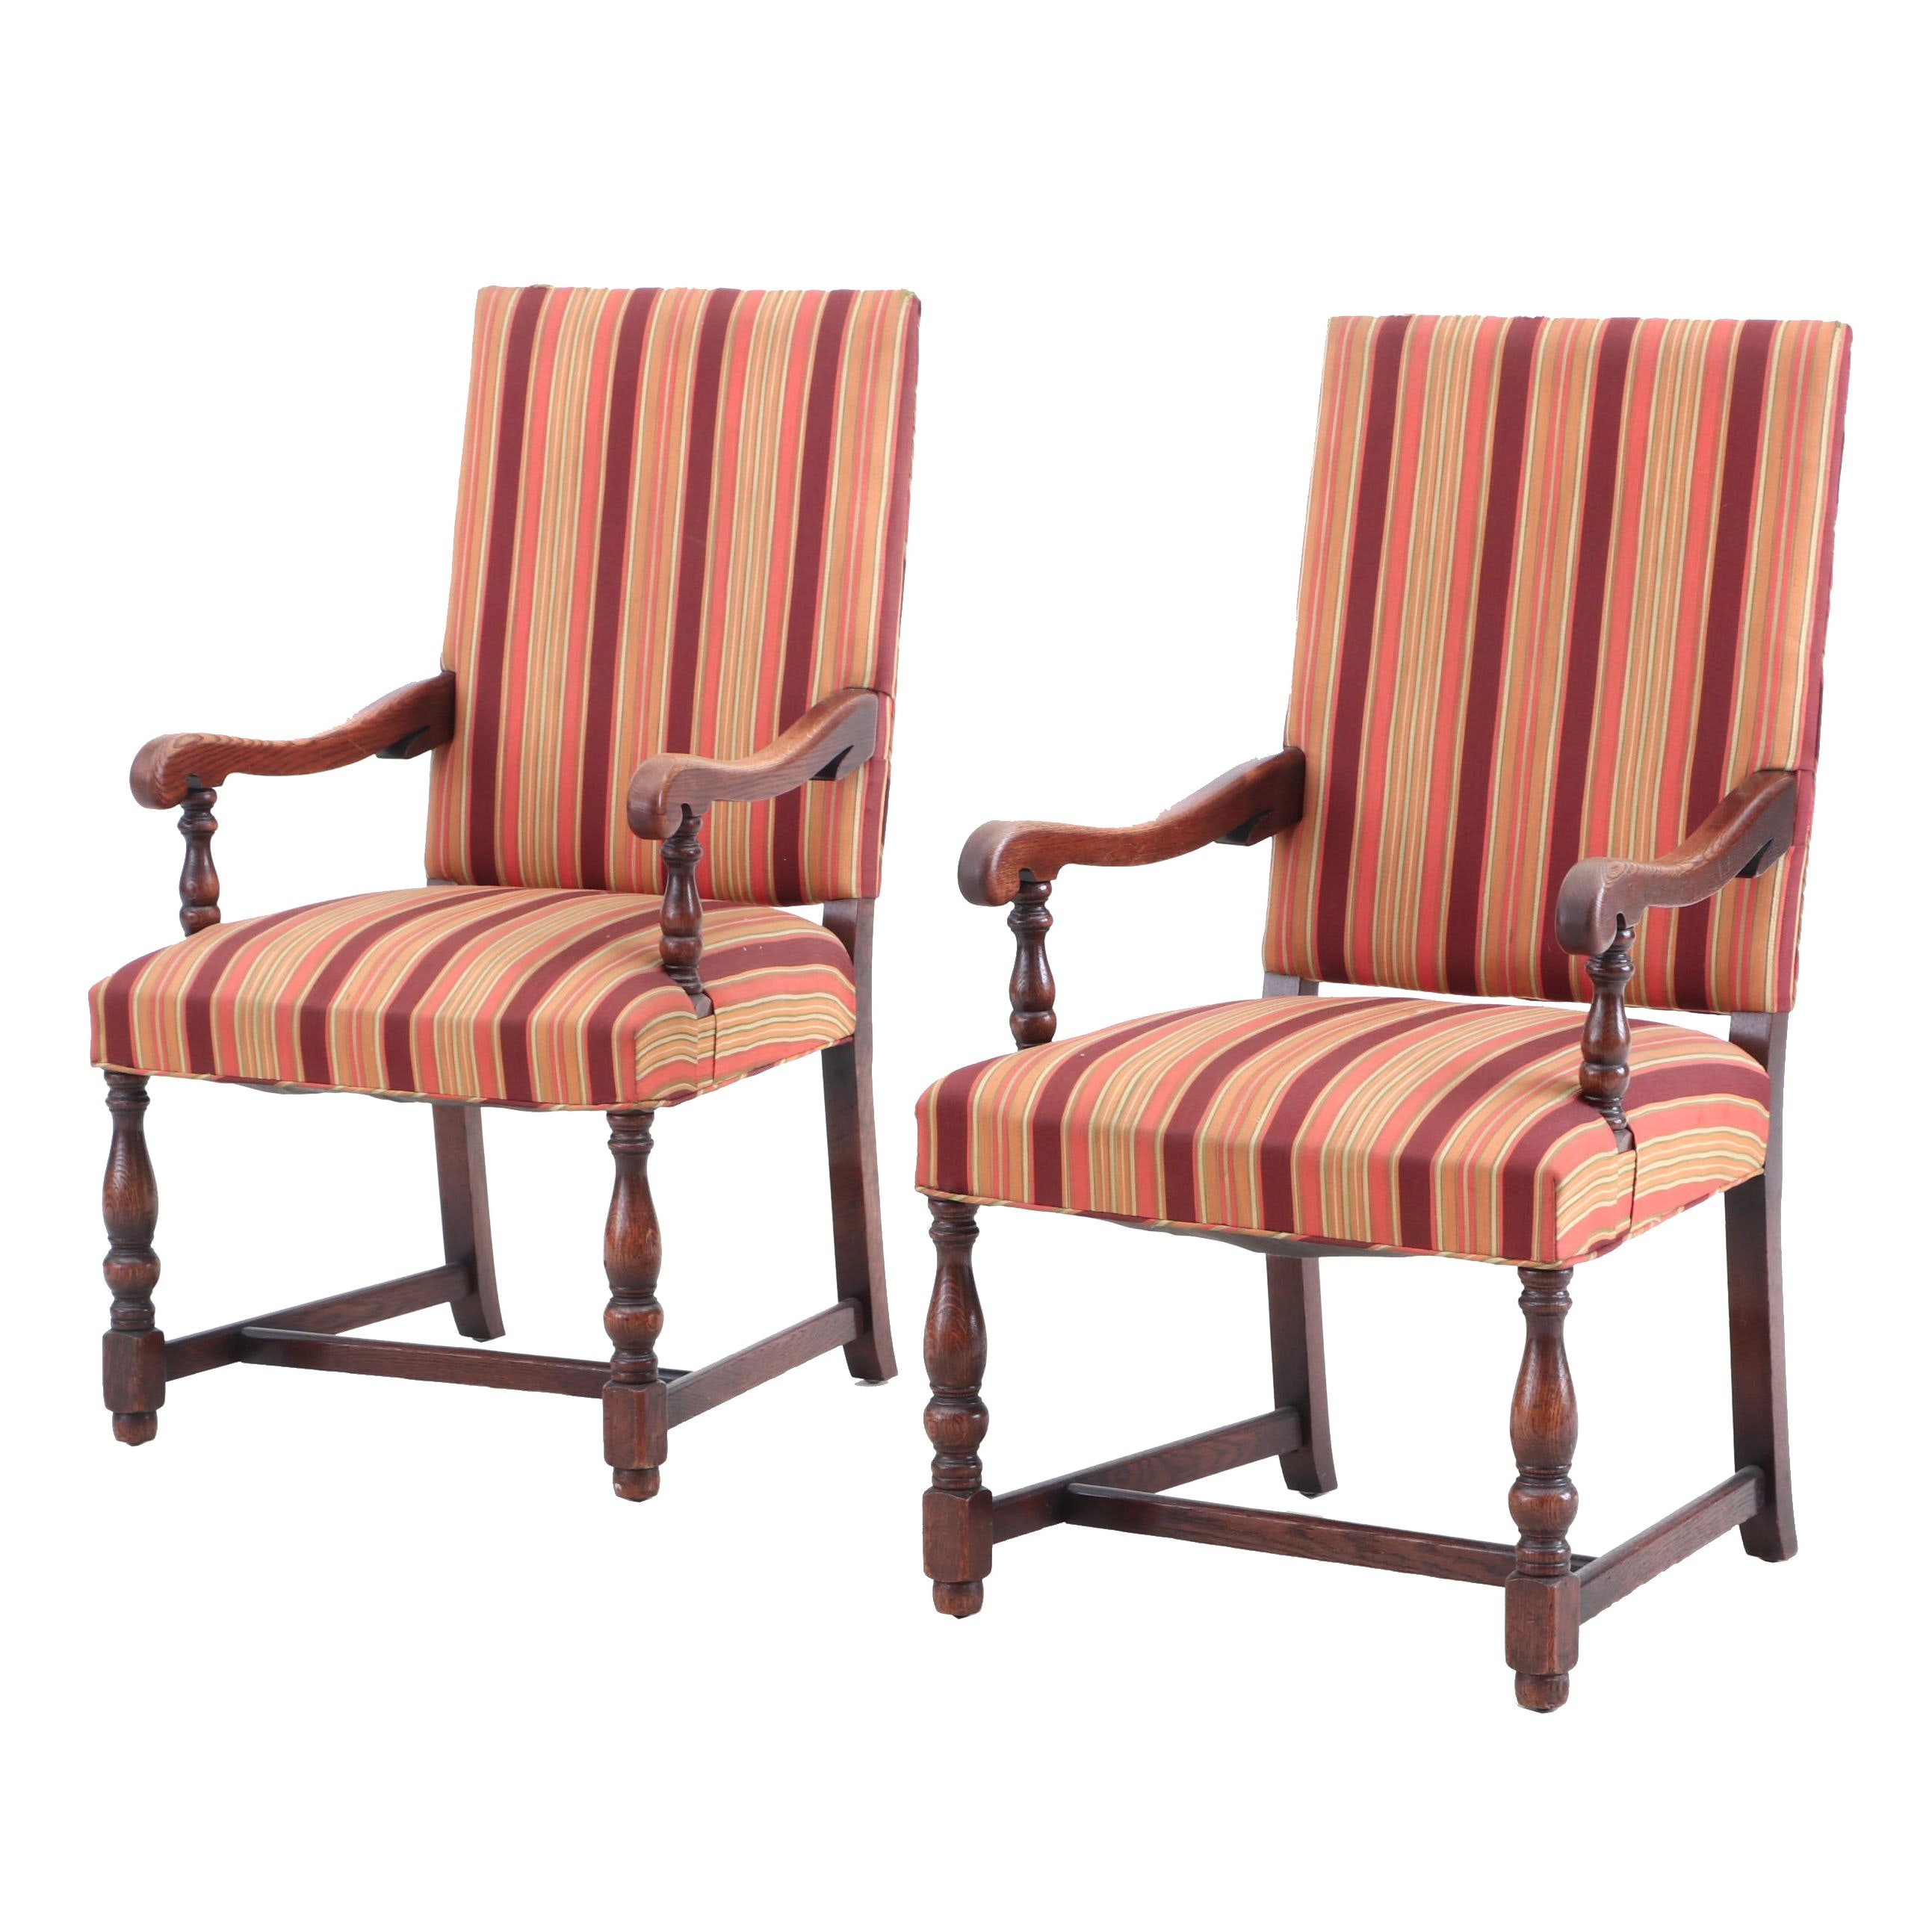 Jacobean Revival Style Upholstered Arm Chairs